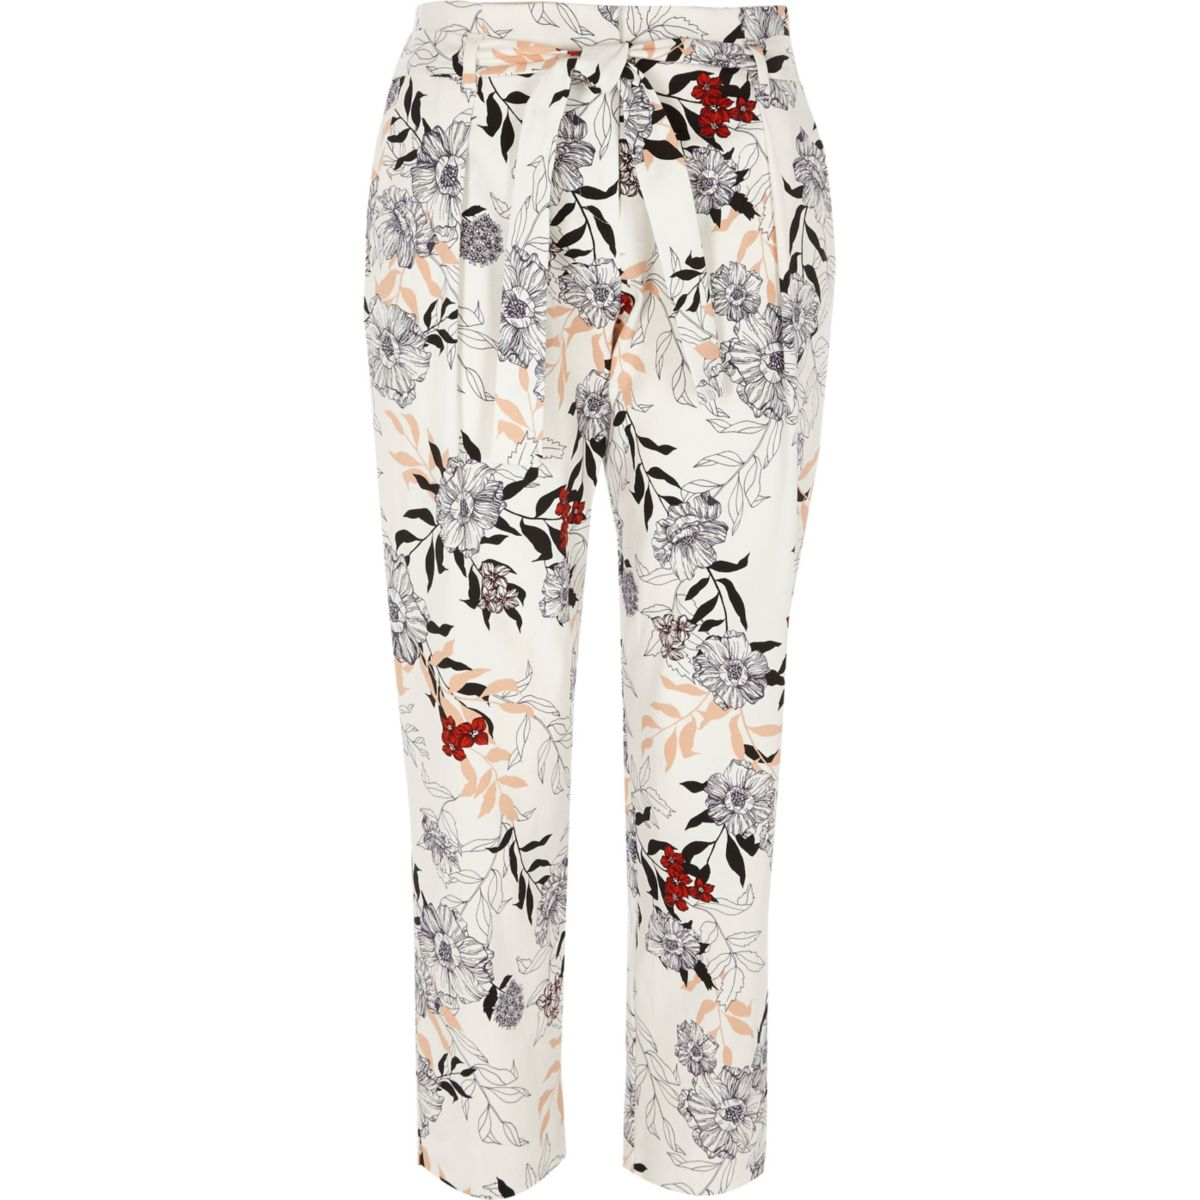 Cream floral print tie waist tapered trousers